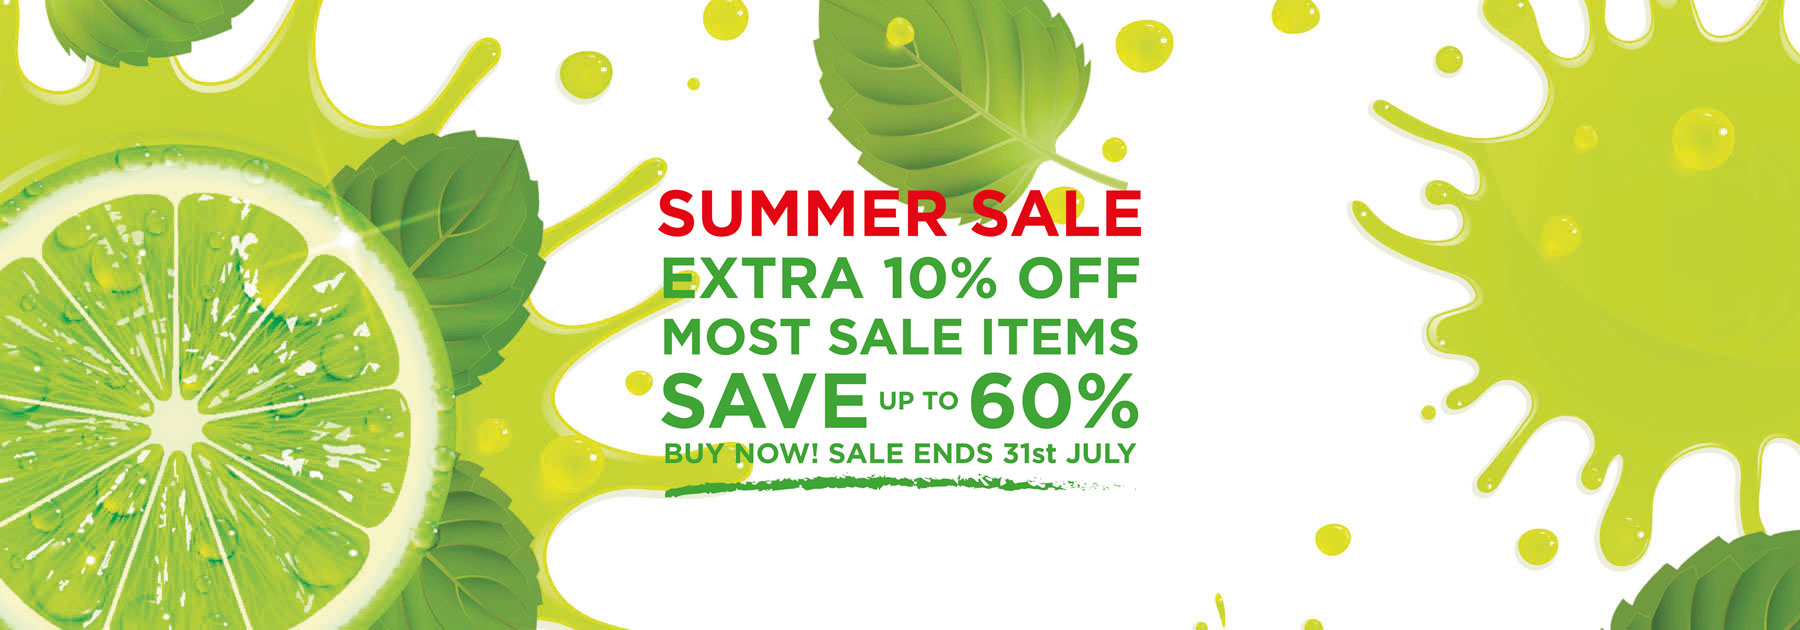 summer, sale, discounts, offers, promotions